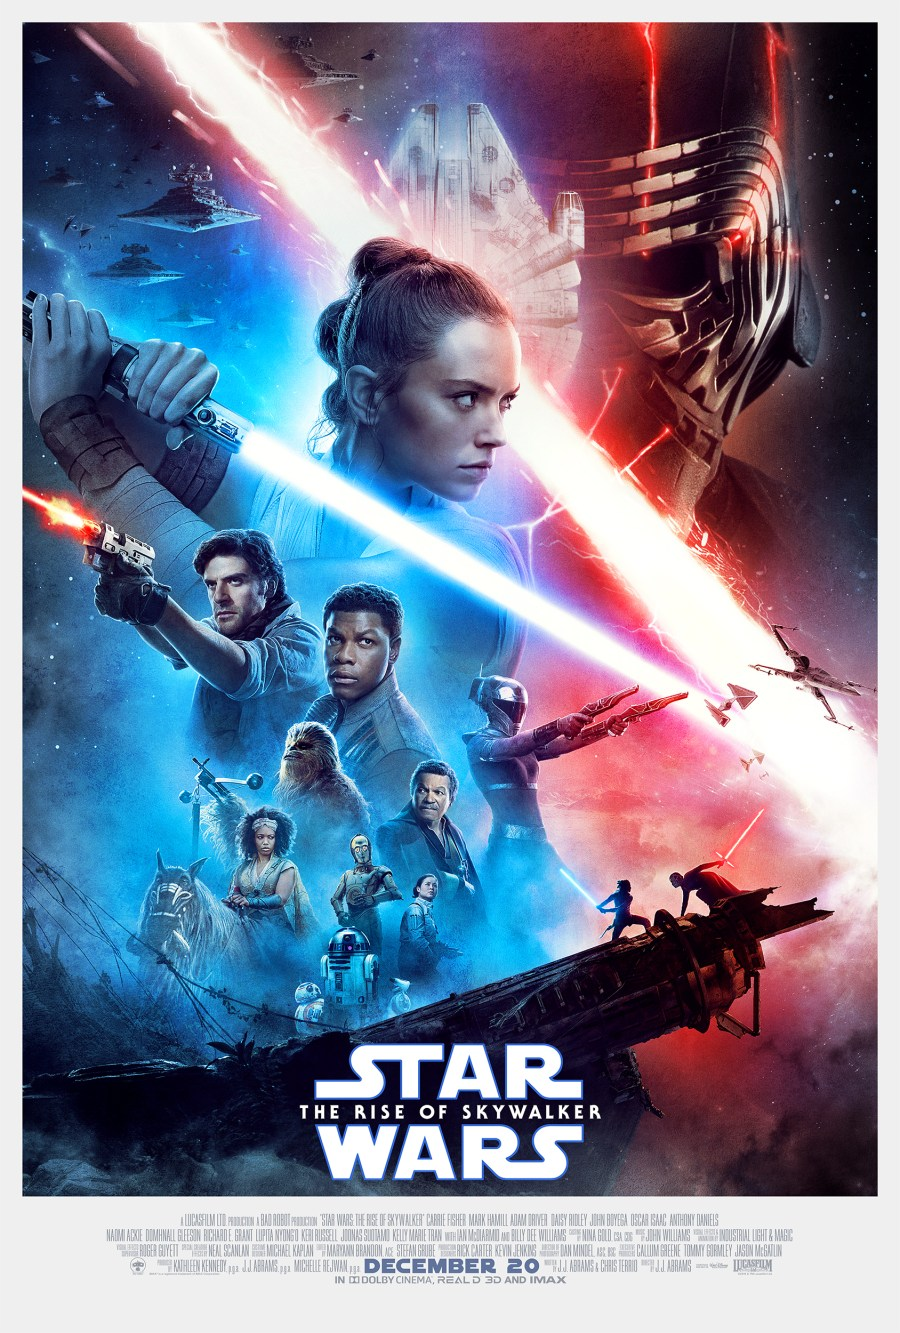 Star Wars: The Rise of Skywalker {Spoiler-Free Review}